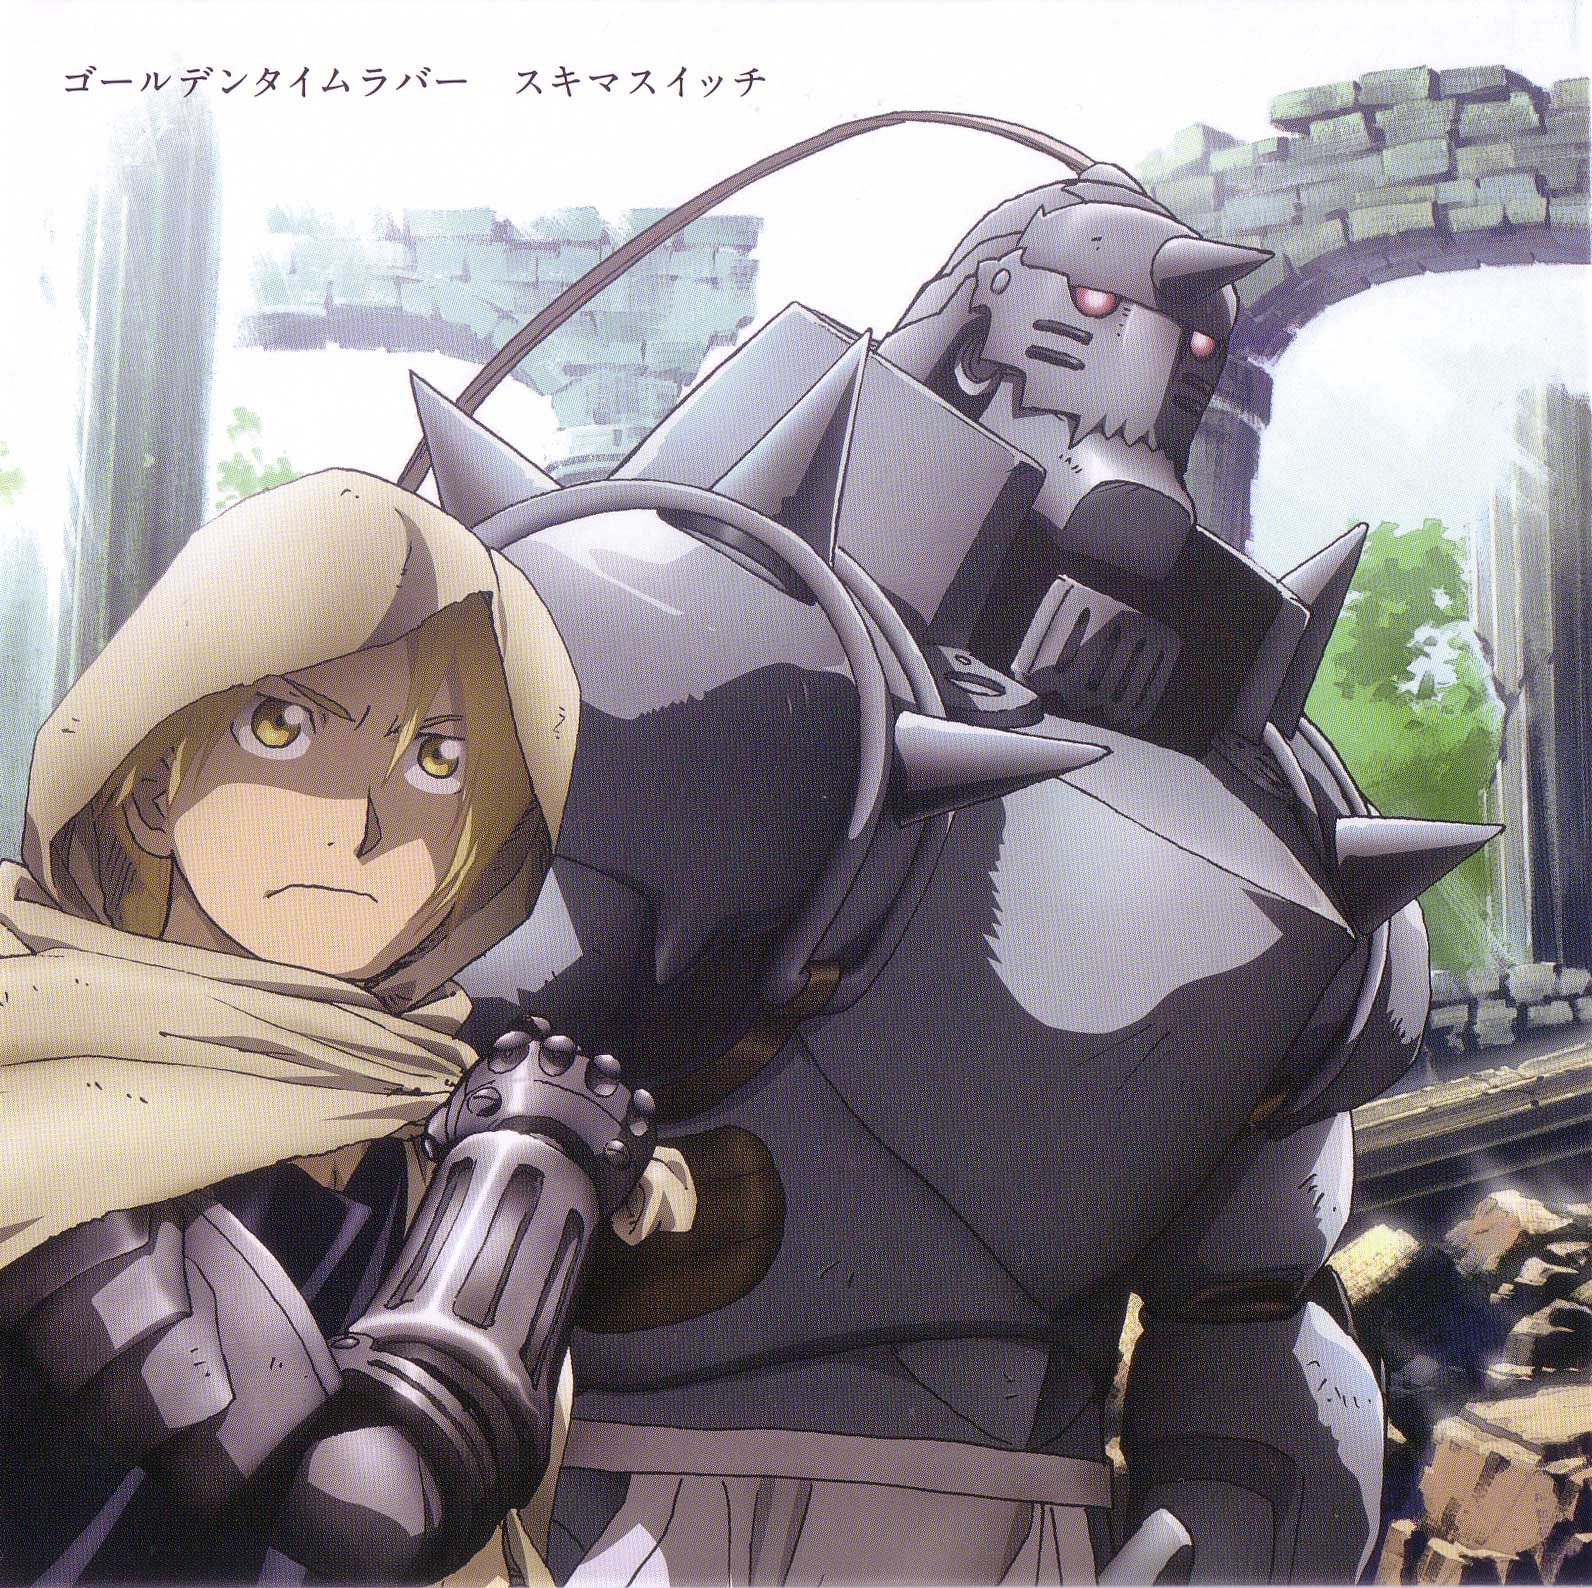 Fullmetal Alchemist: Brotherhood [OST] MUSIC COLLECTION [FLAC + MP3